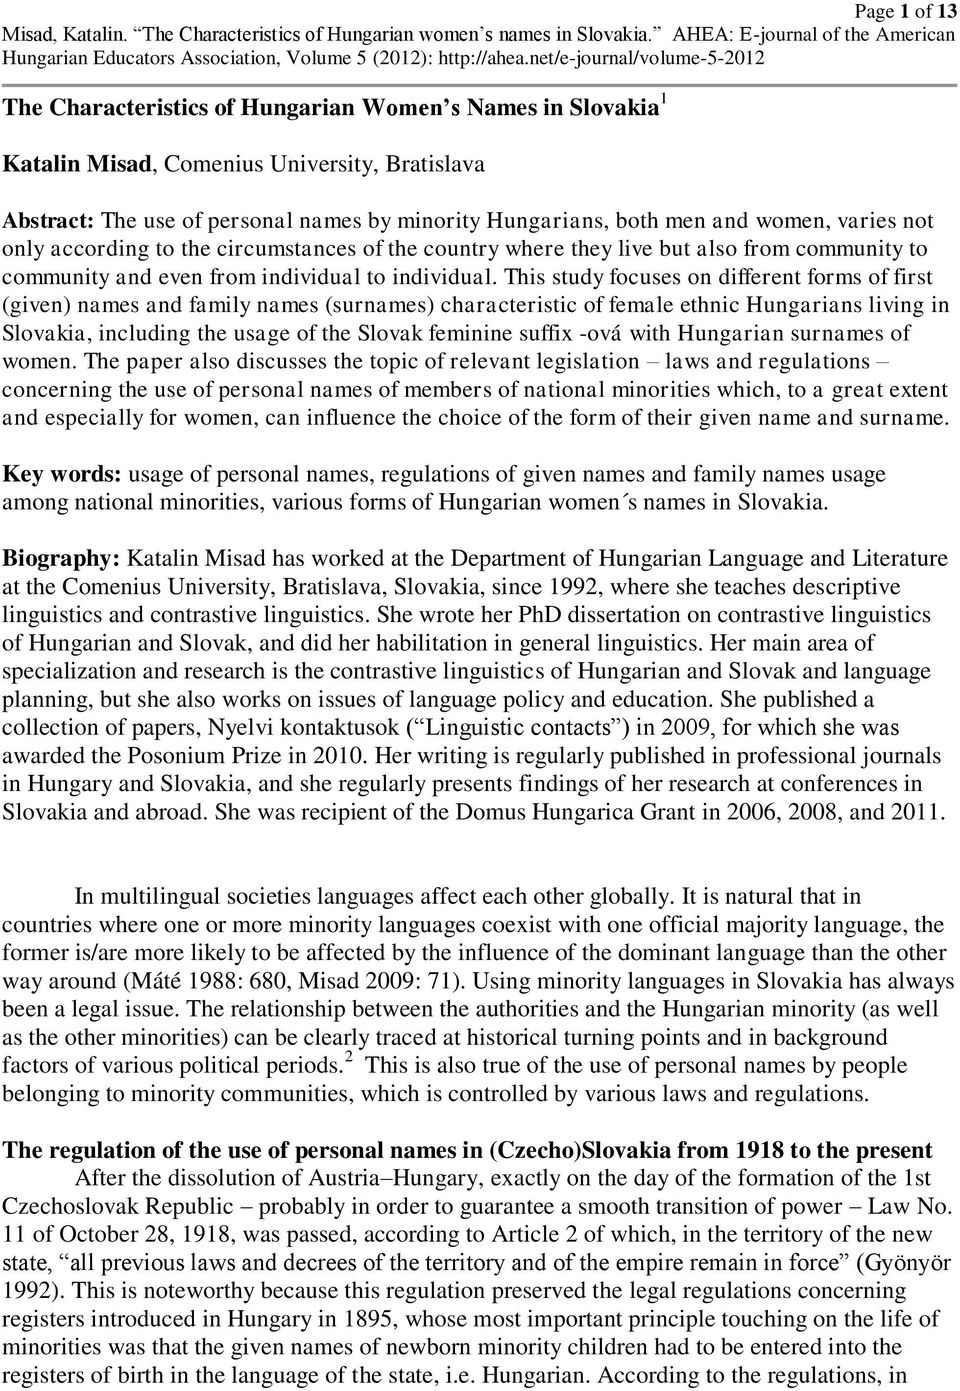 This study focuses on different forms of first (given) names and family names (surnames) characteristic of female ethnic Hungarians living in Slovakia, including the usage of the Slovak feminine